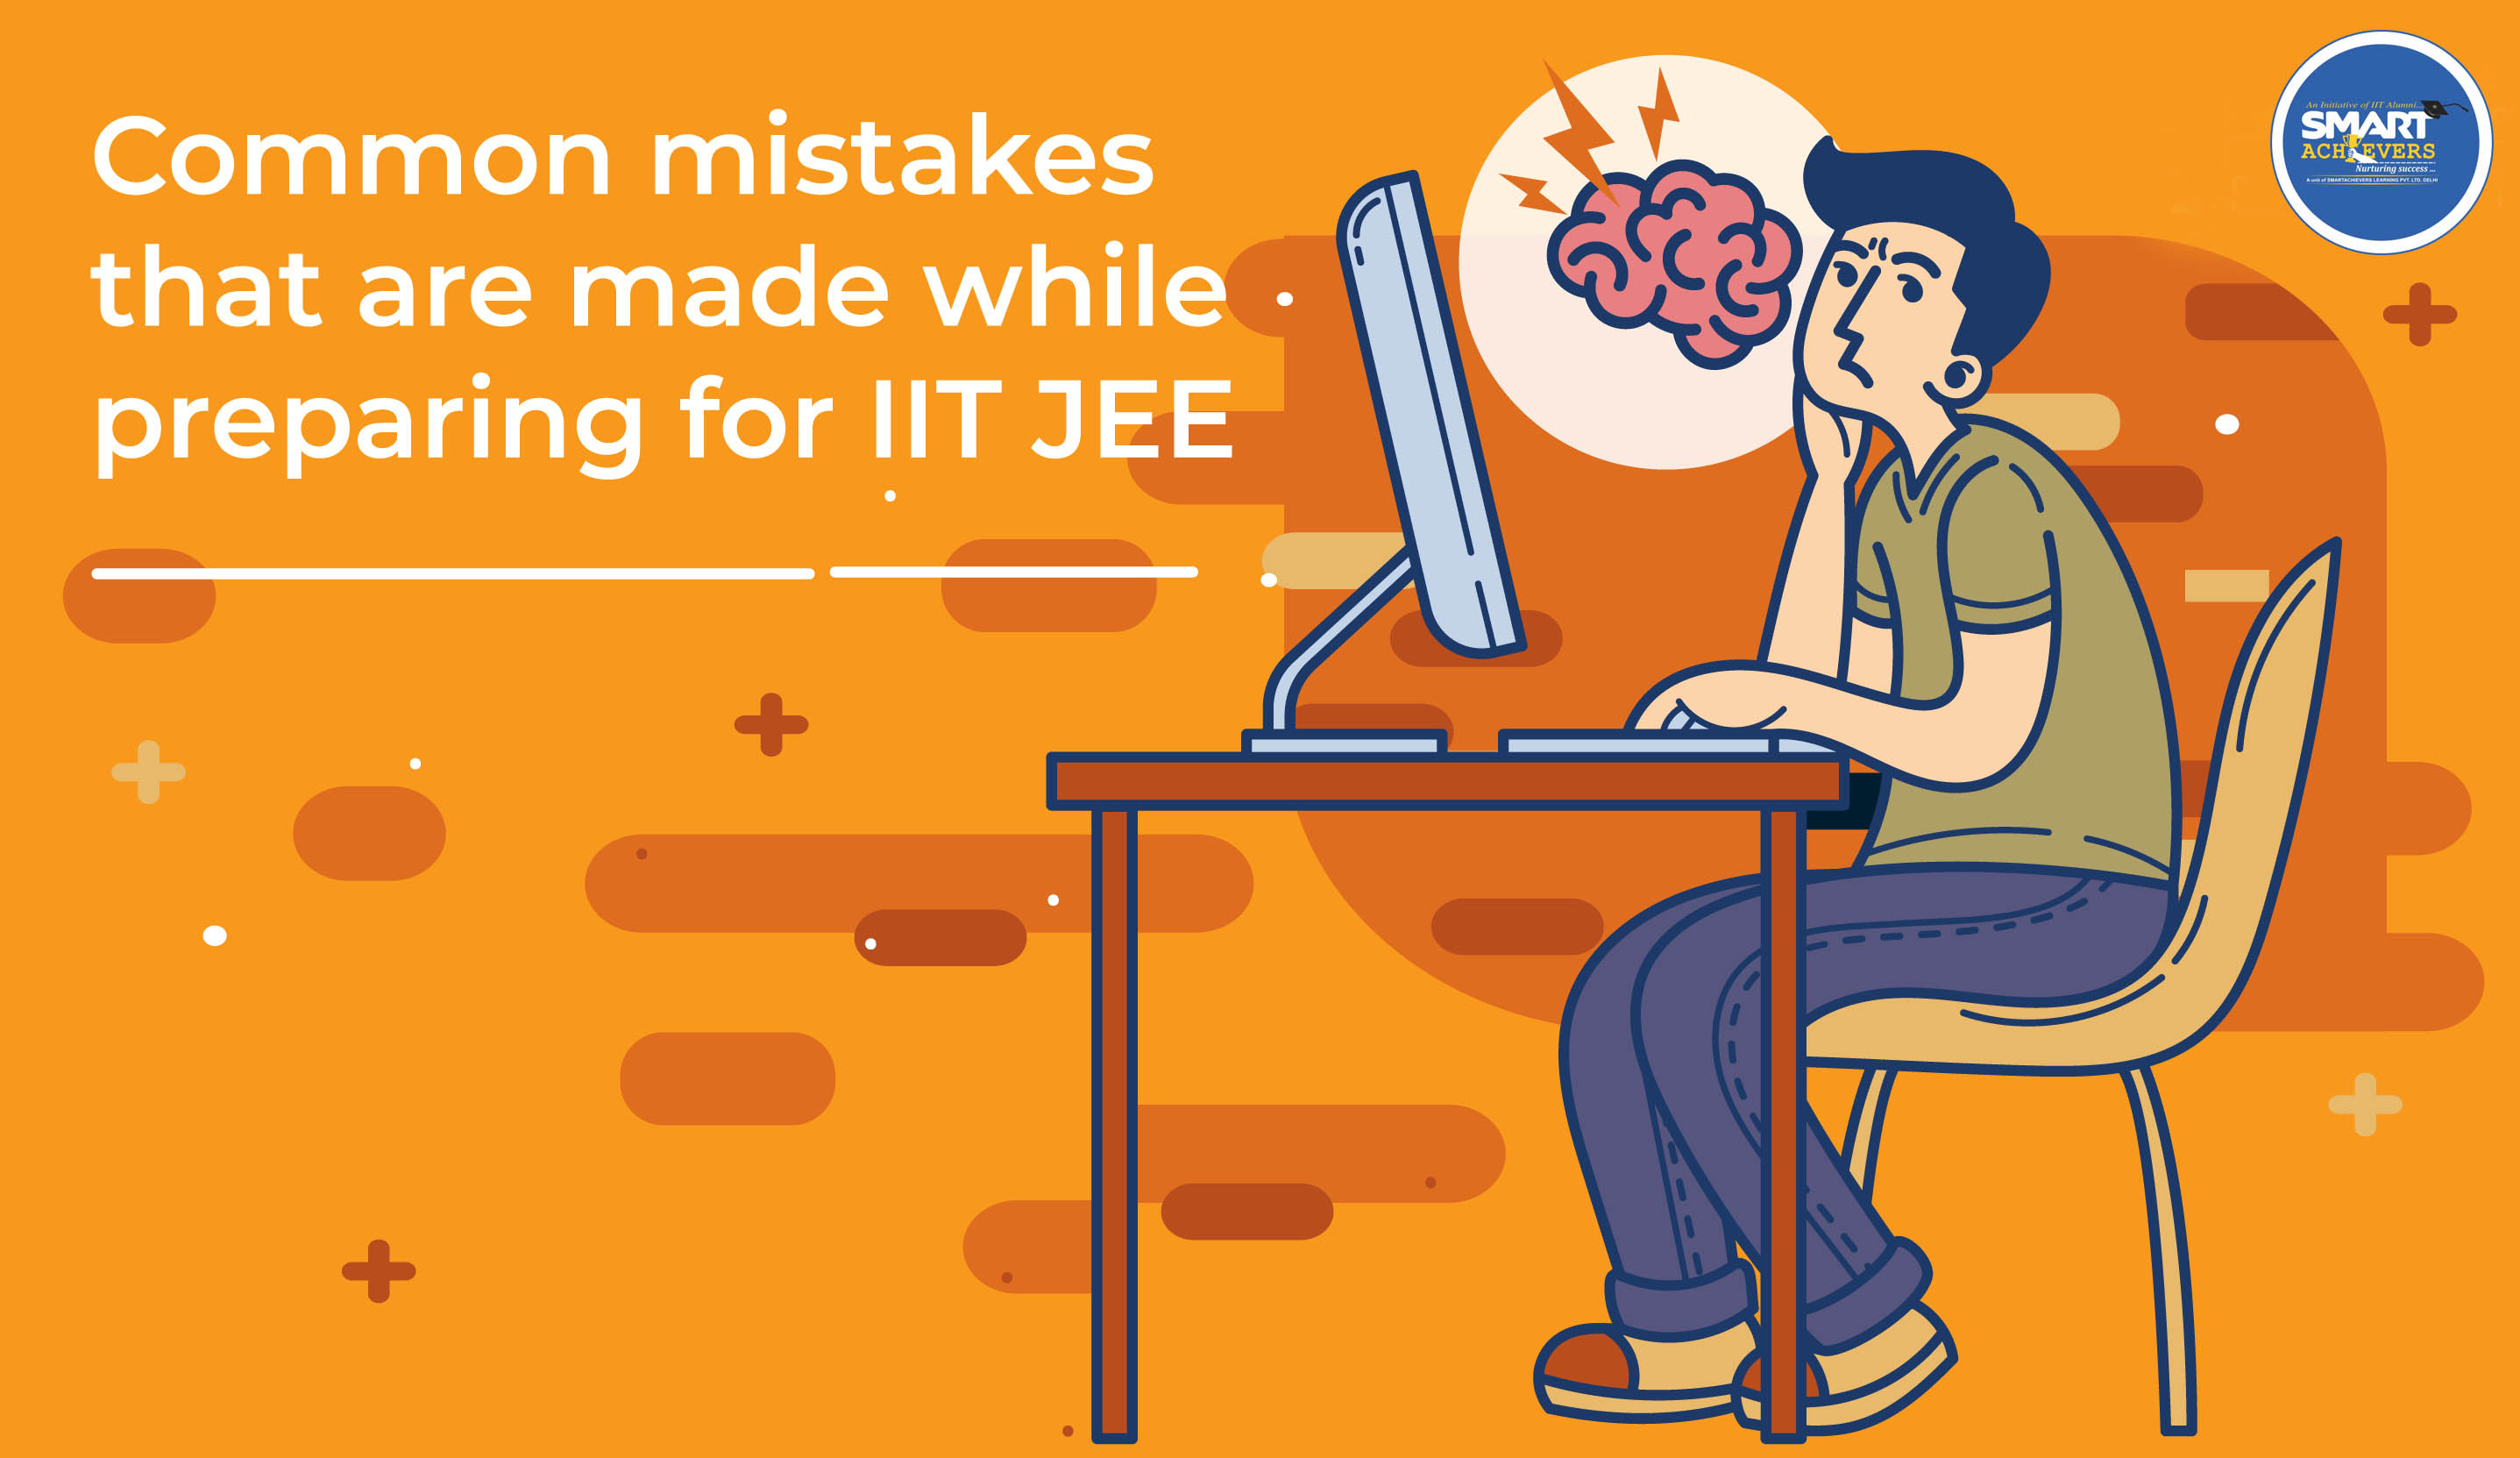 10 Common Mistakes That Are Made While Preparing For IIT JEE